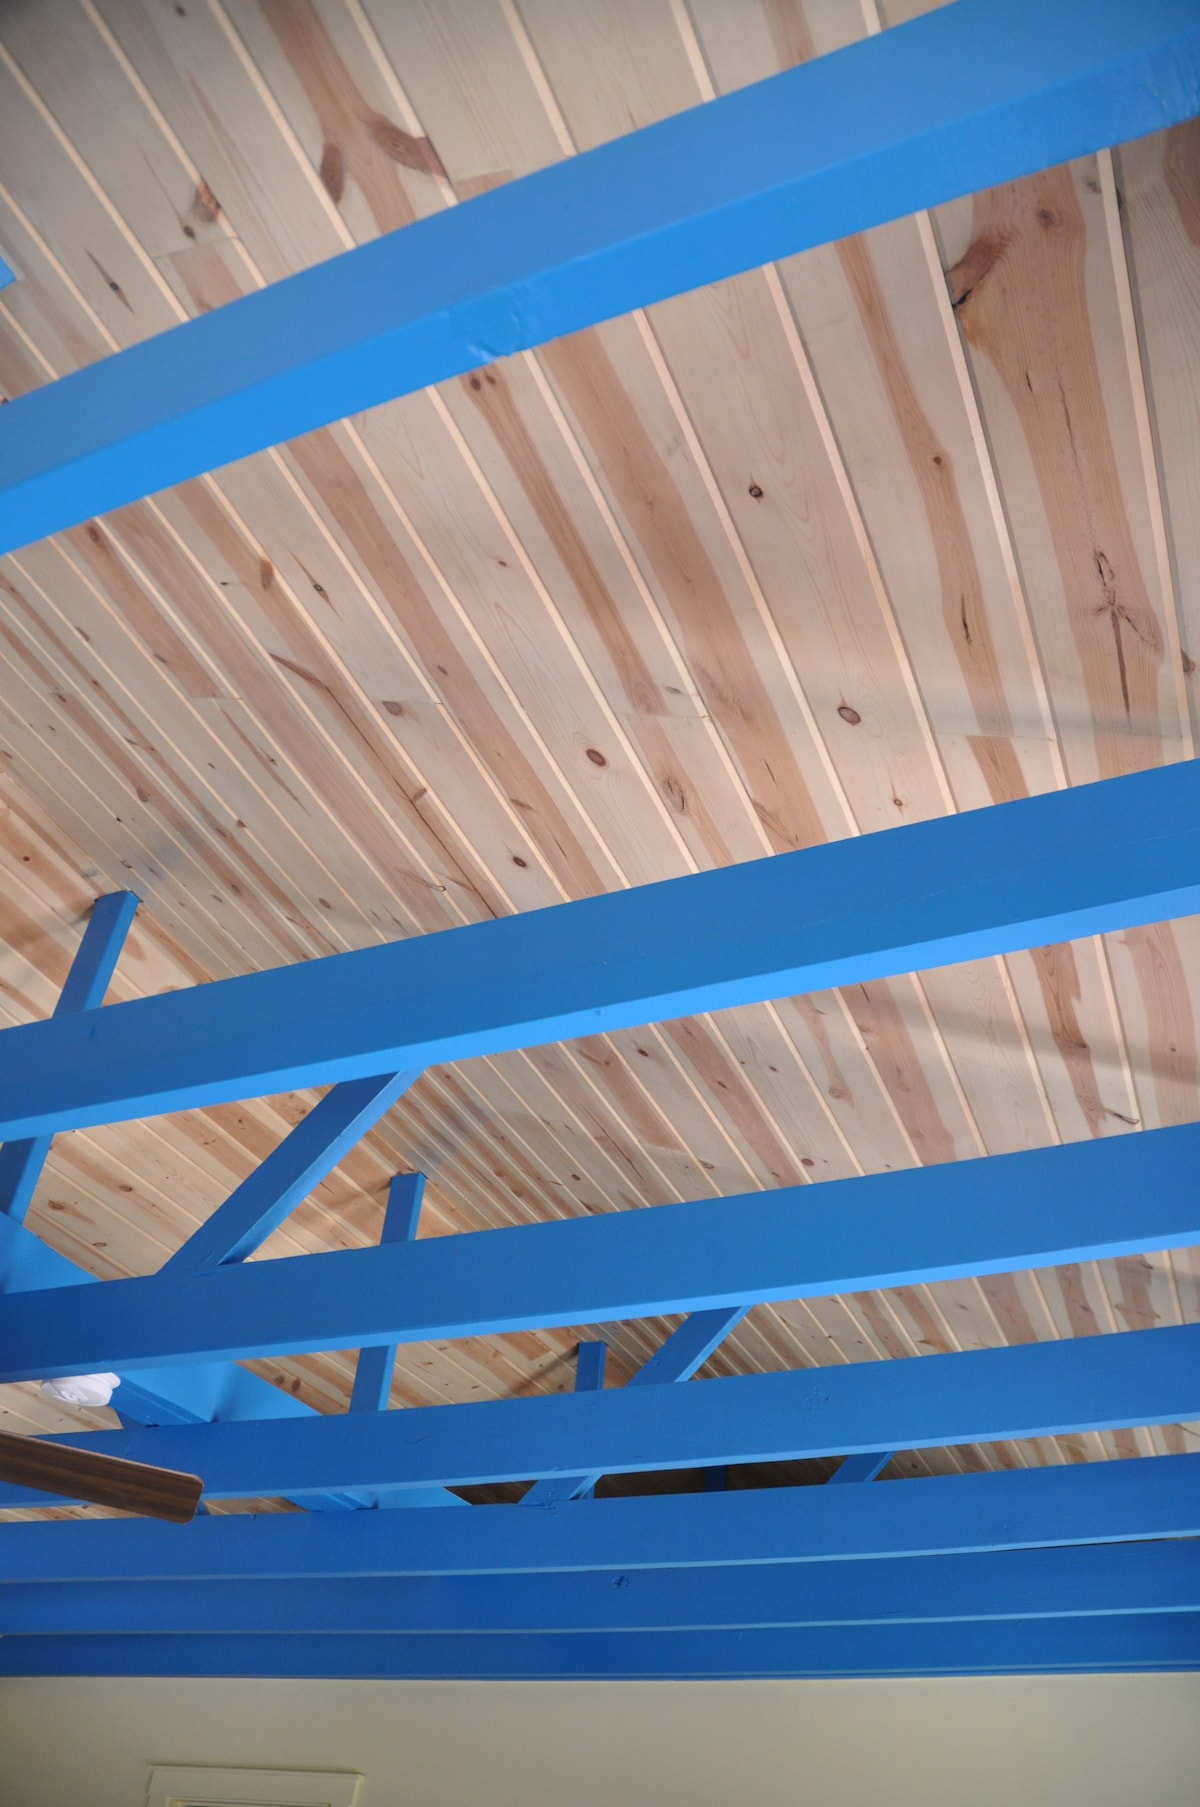 Blue rafters give the room an airy feeling.